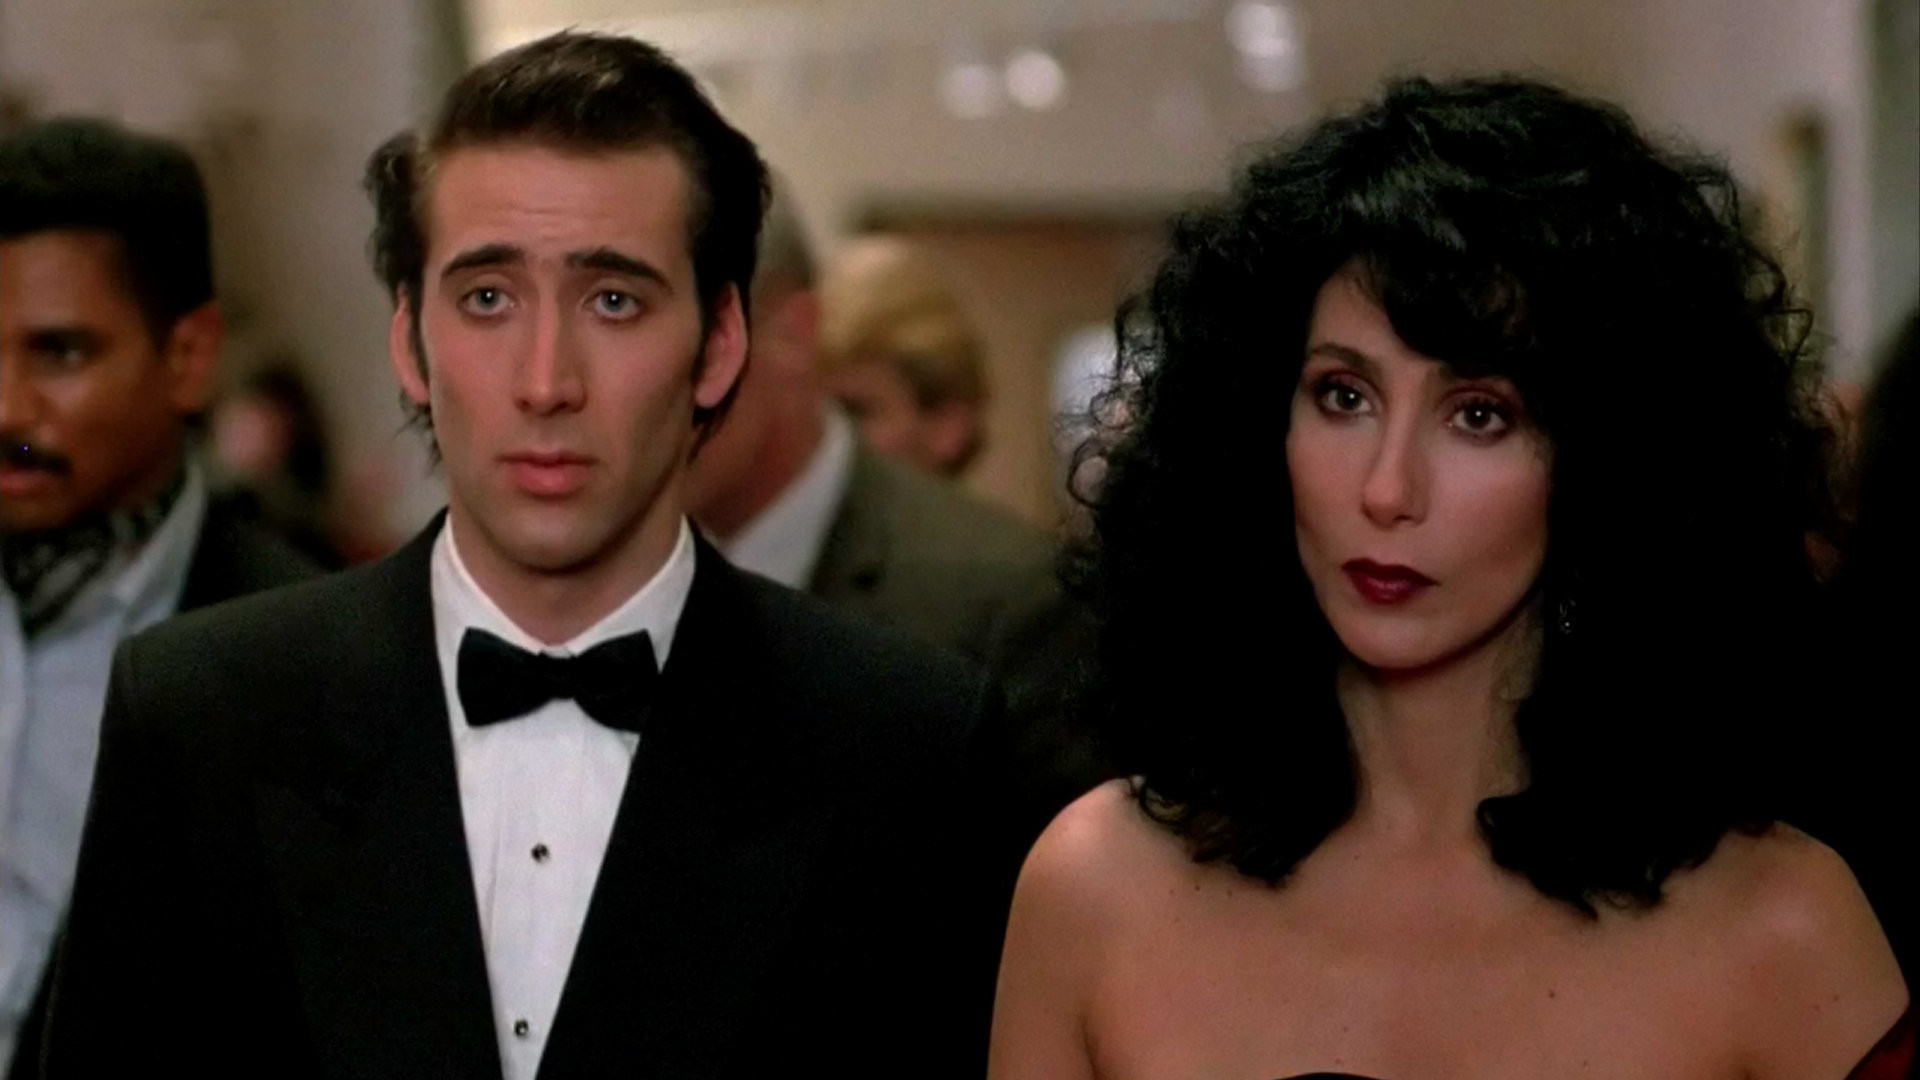 d_cher_and_cage_moonstruck.jpg